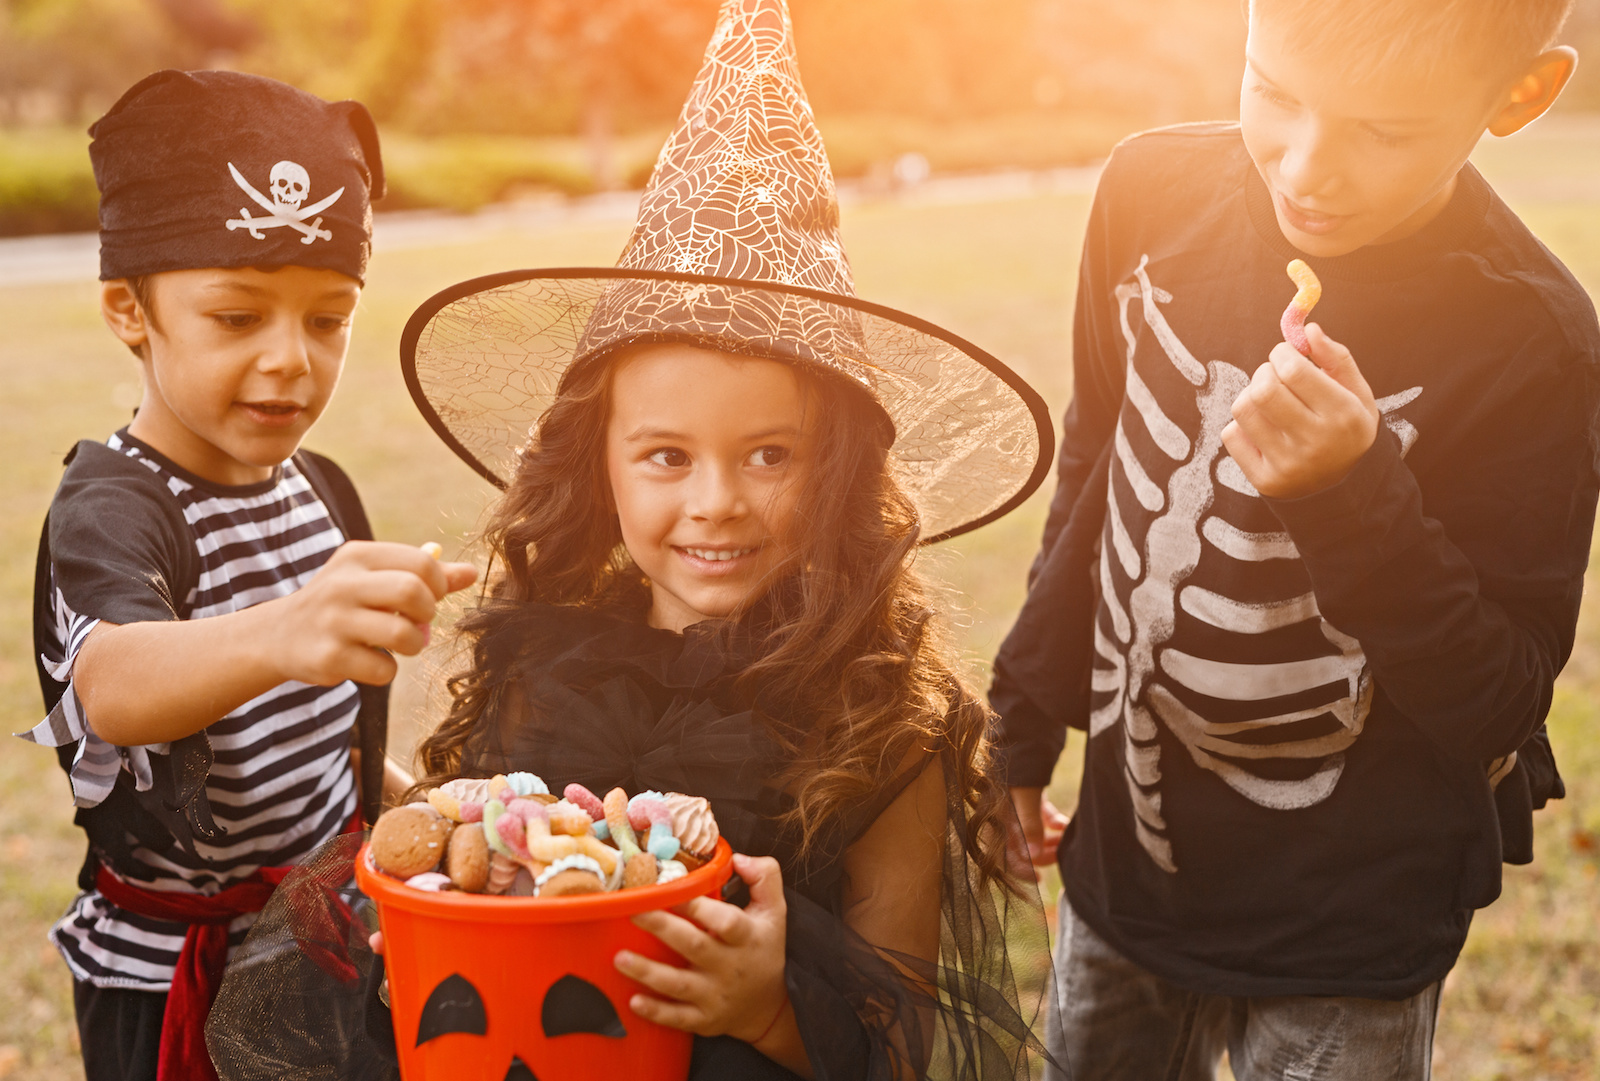 Our Top Tips to Prevent Cavities This Halloween: Keep Their Teeth Healthy!